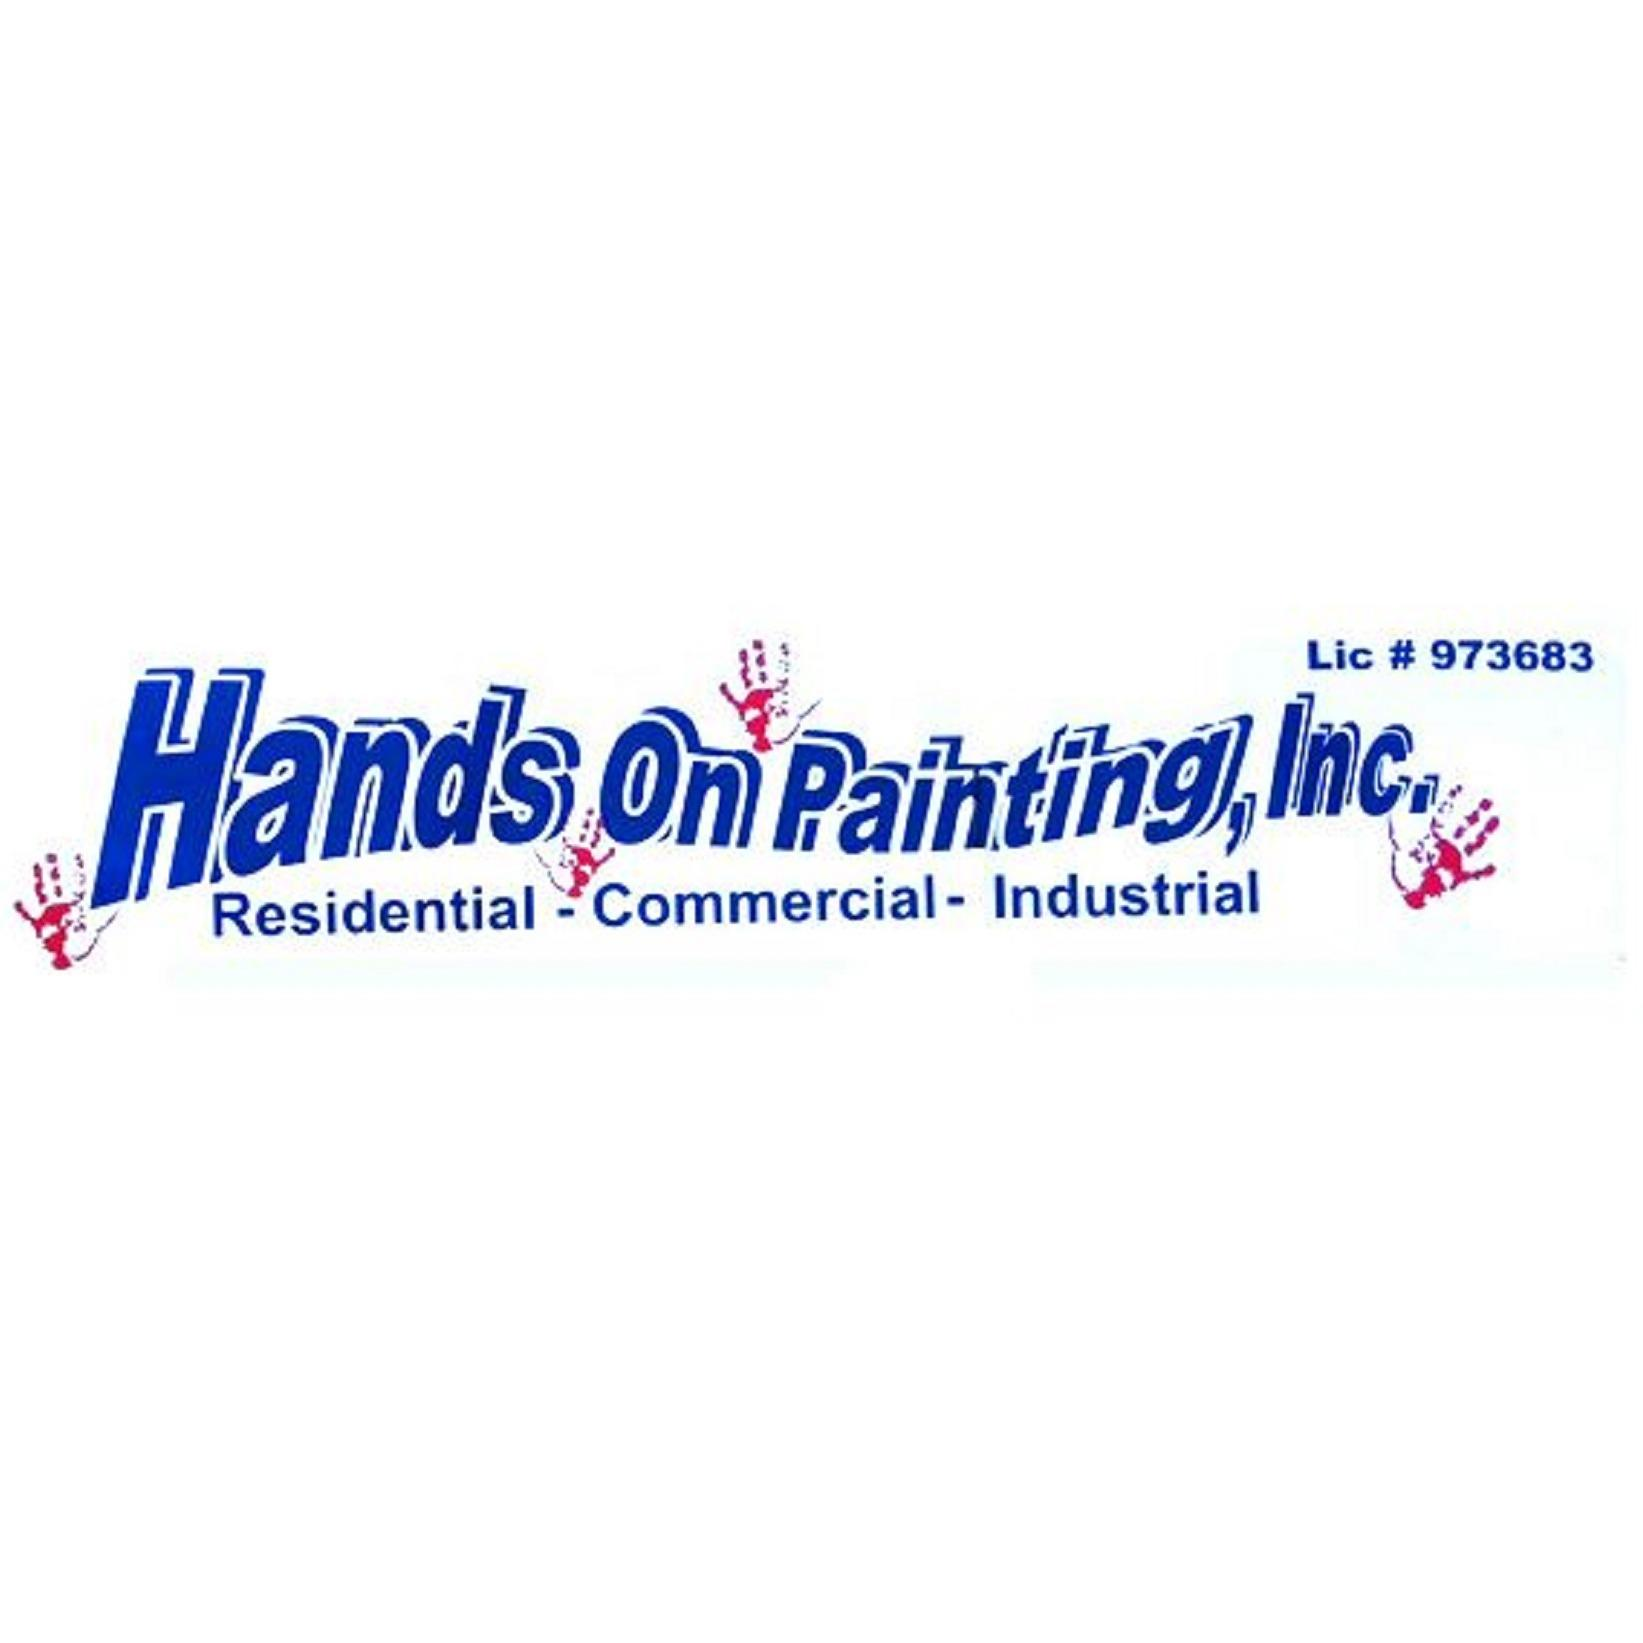 HANDS ON PAINTING INC